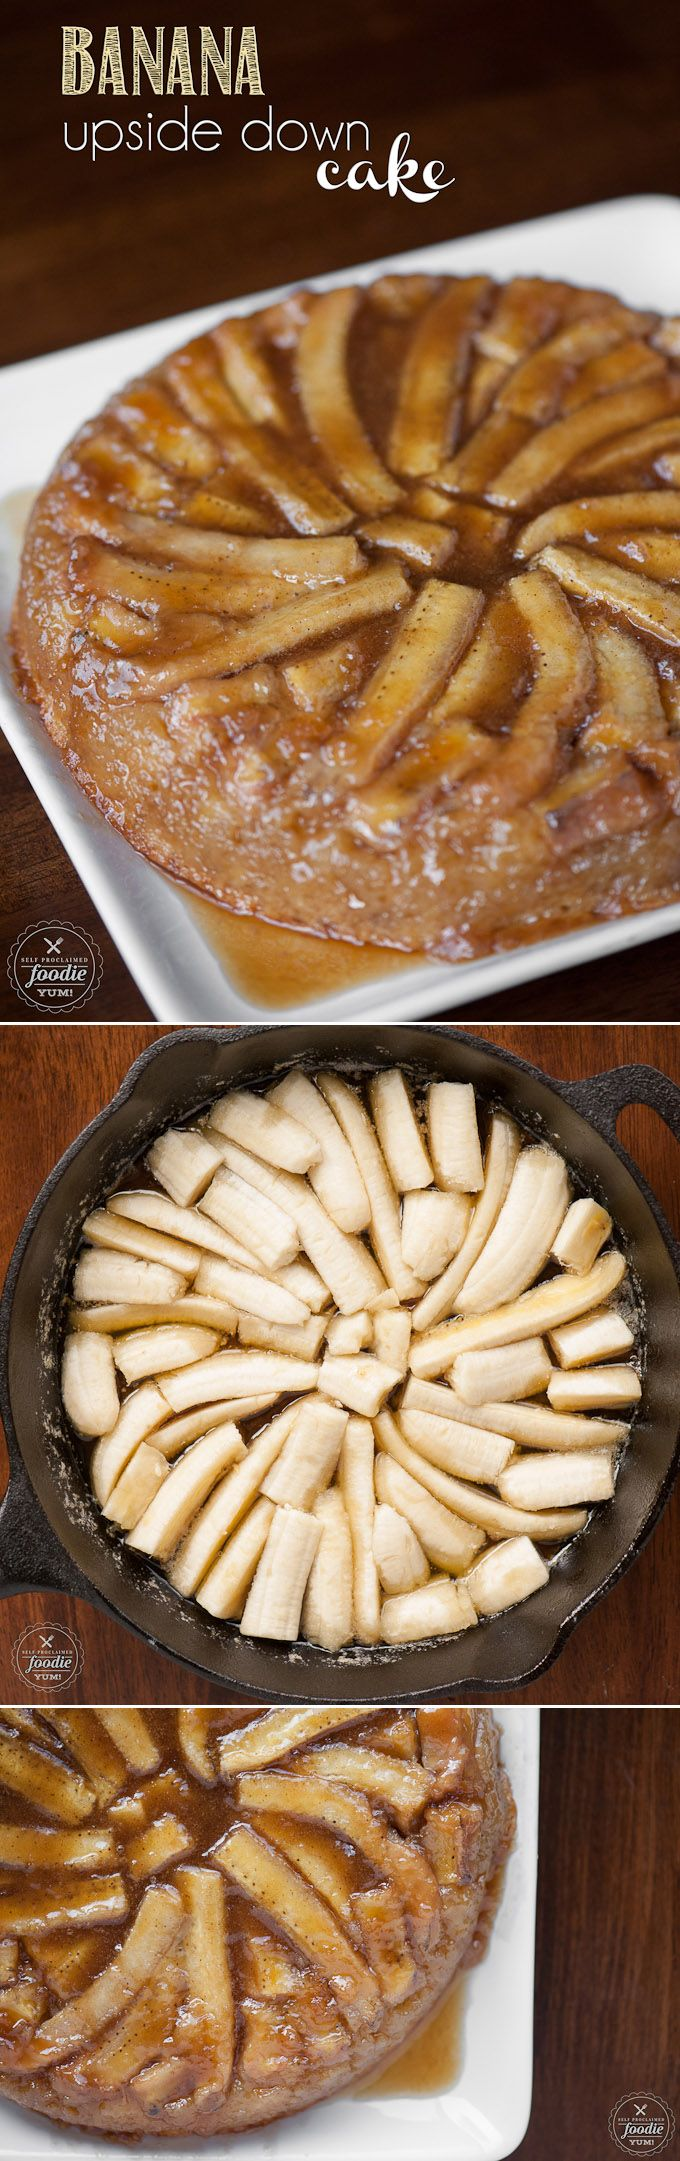 Put those ripe bananas to excellent use and make this easy, rich and sinful Banana Upside Down Cake. Its the perfect dessert for any occasion.